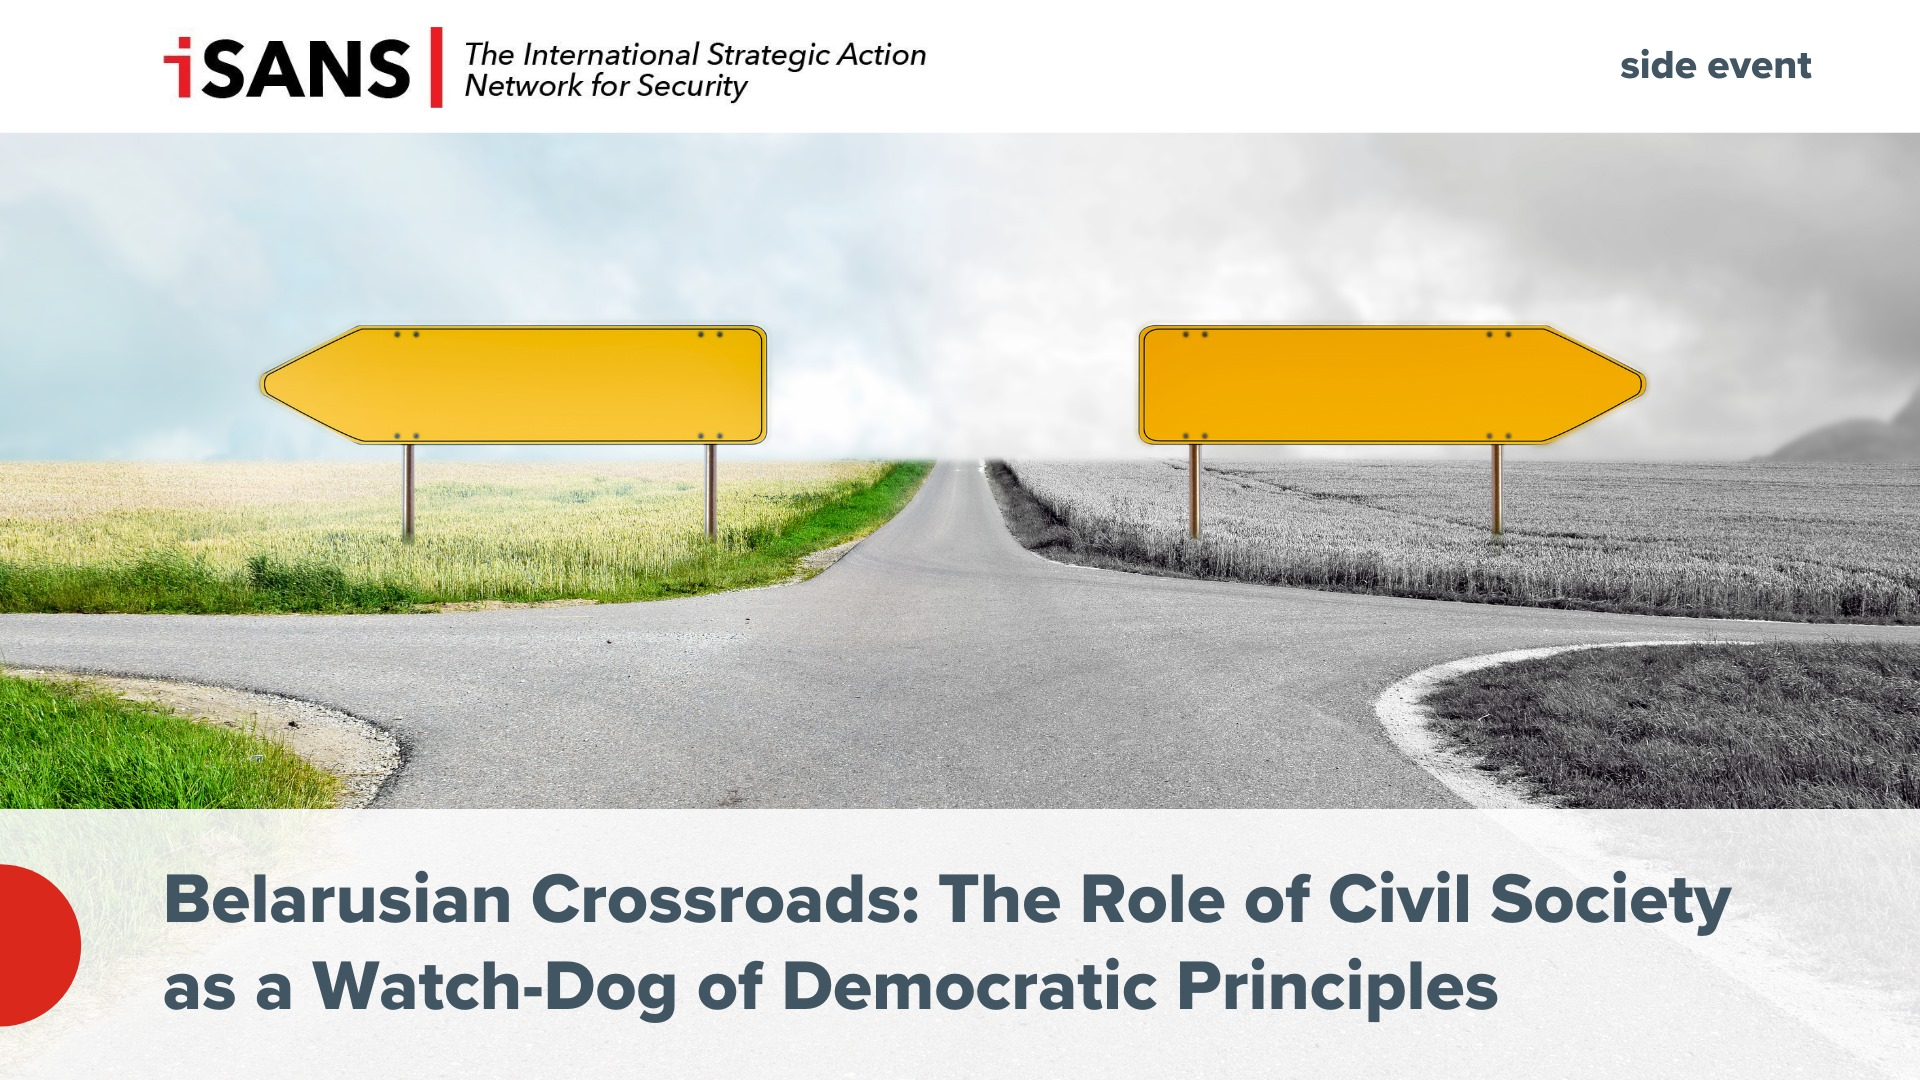 GLOBSEC 2021: Belarusian Crossroads: The Role of Civil Society as a Watch Dog of Democratic Principles